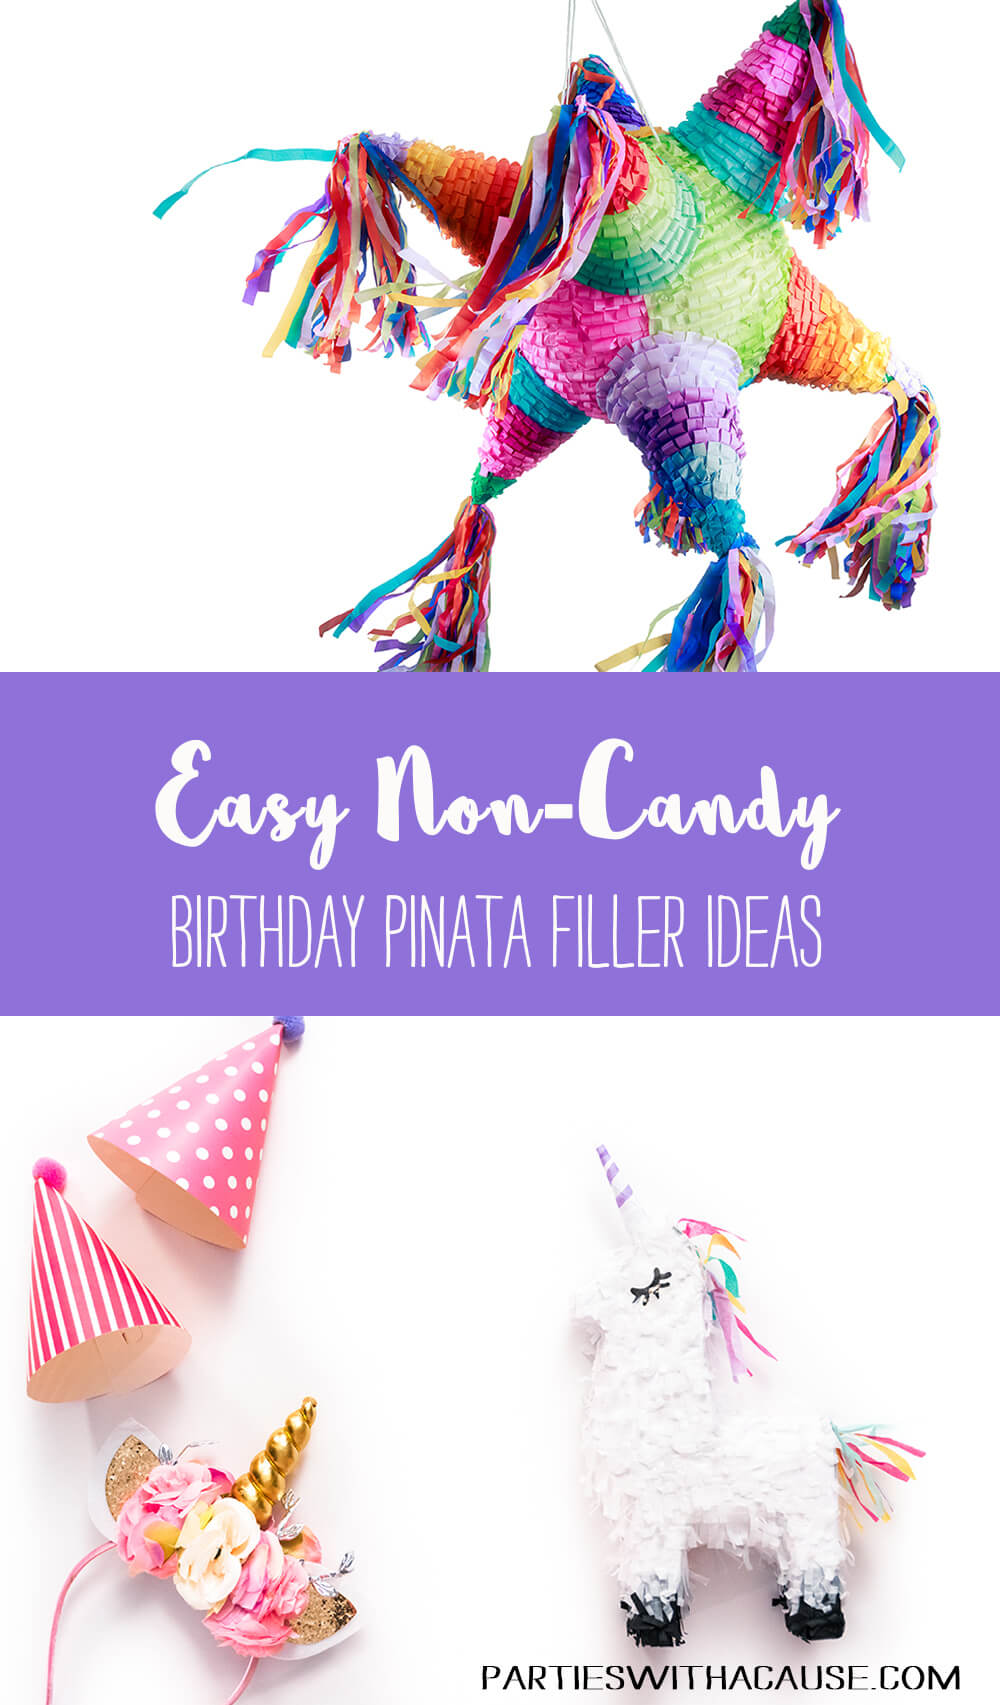 Funny Things To Put In A Pinata : funny, things, pinata, Birthday, Piñata, Filler, Ideas, Other, Candy, Parties, Cause